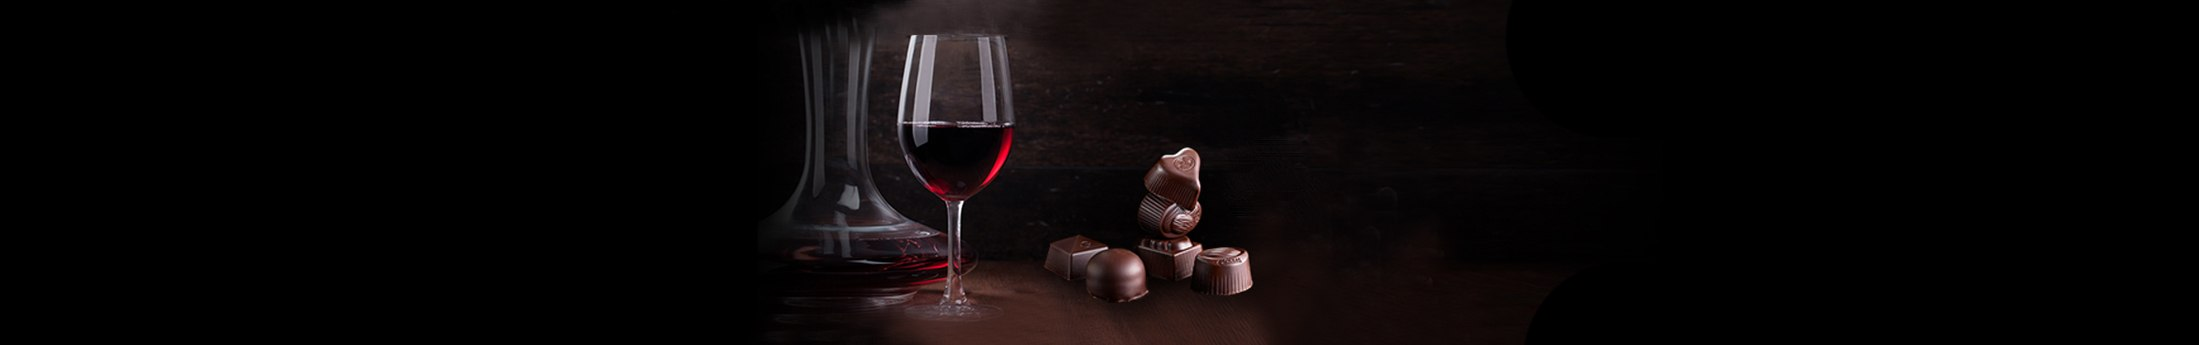 That's why you have to combine red wine and chocolate